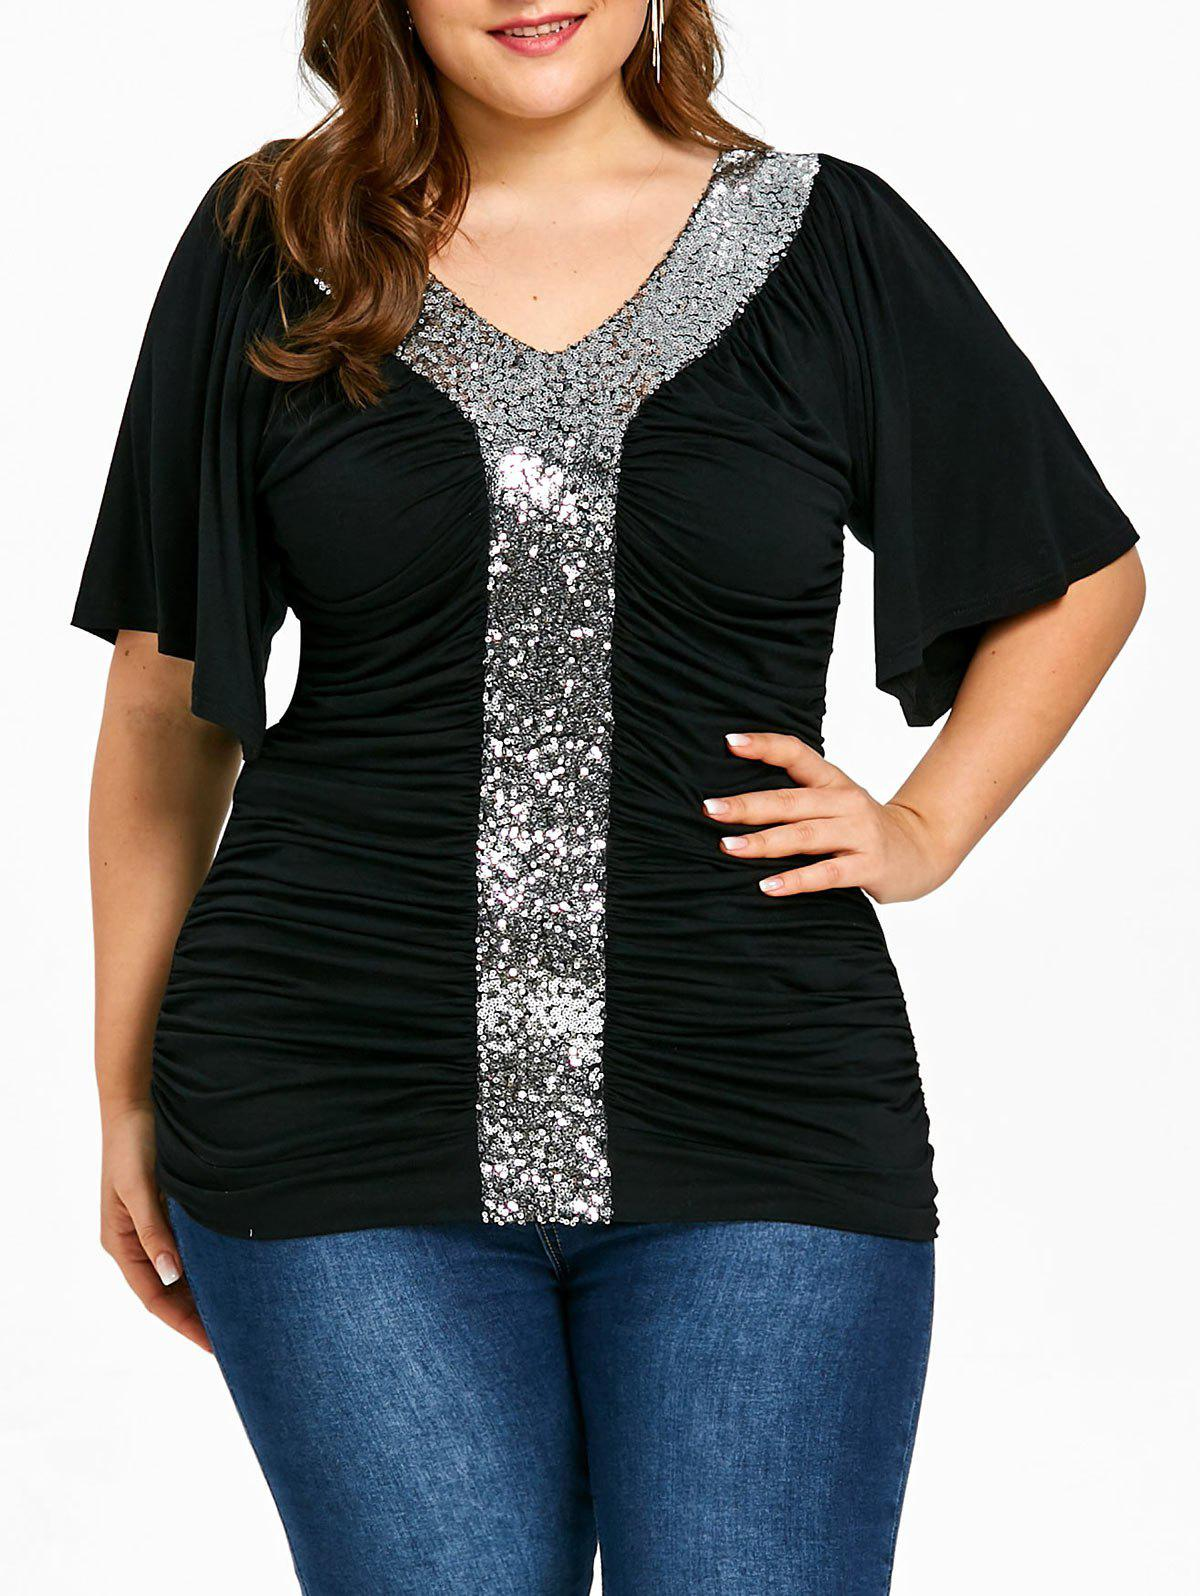 Plus Size Sequined Glittery Ruched T-shirt - BLACK 2XL